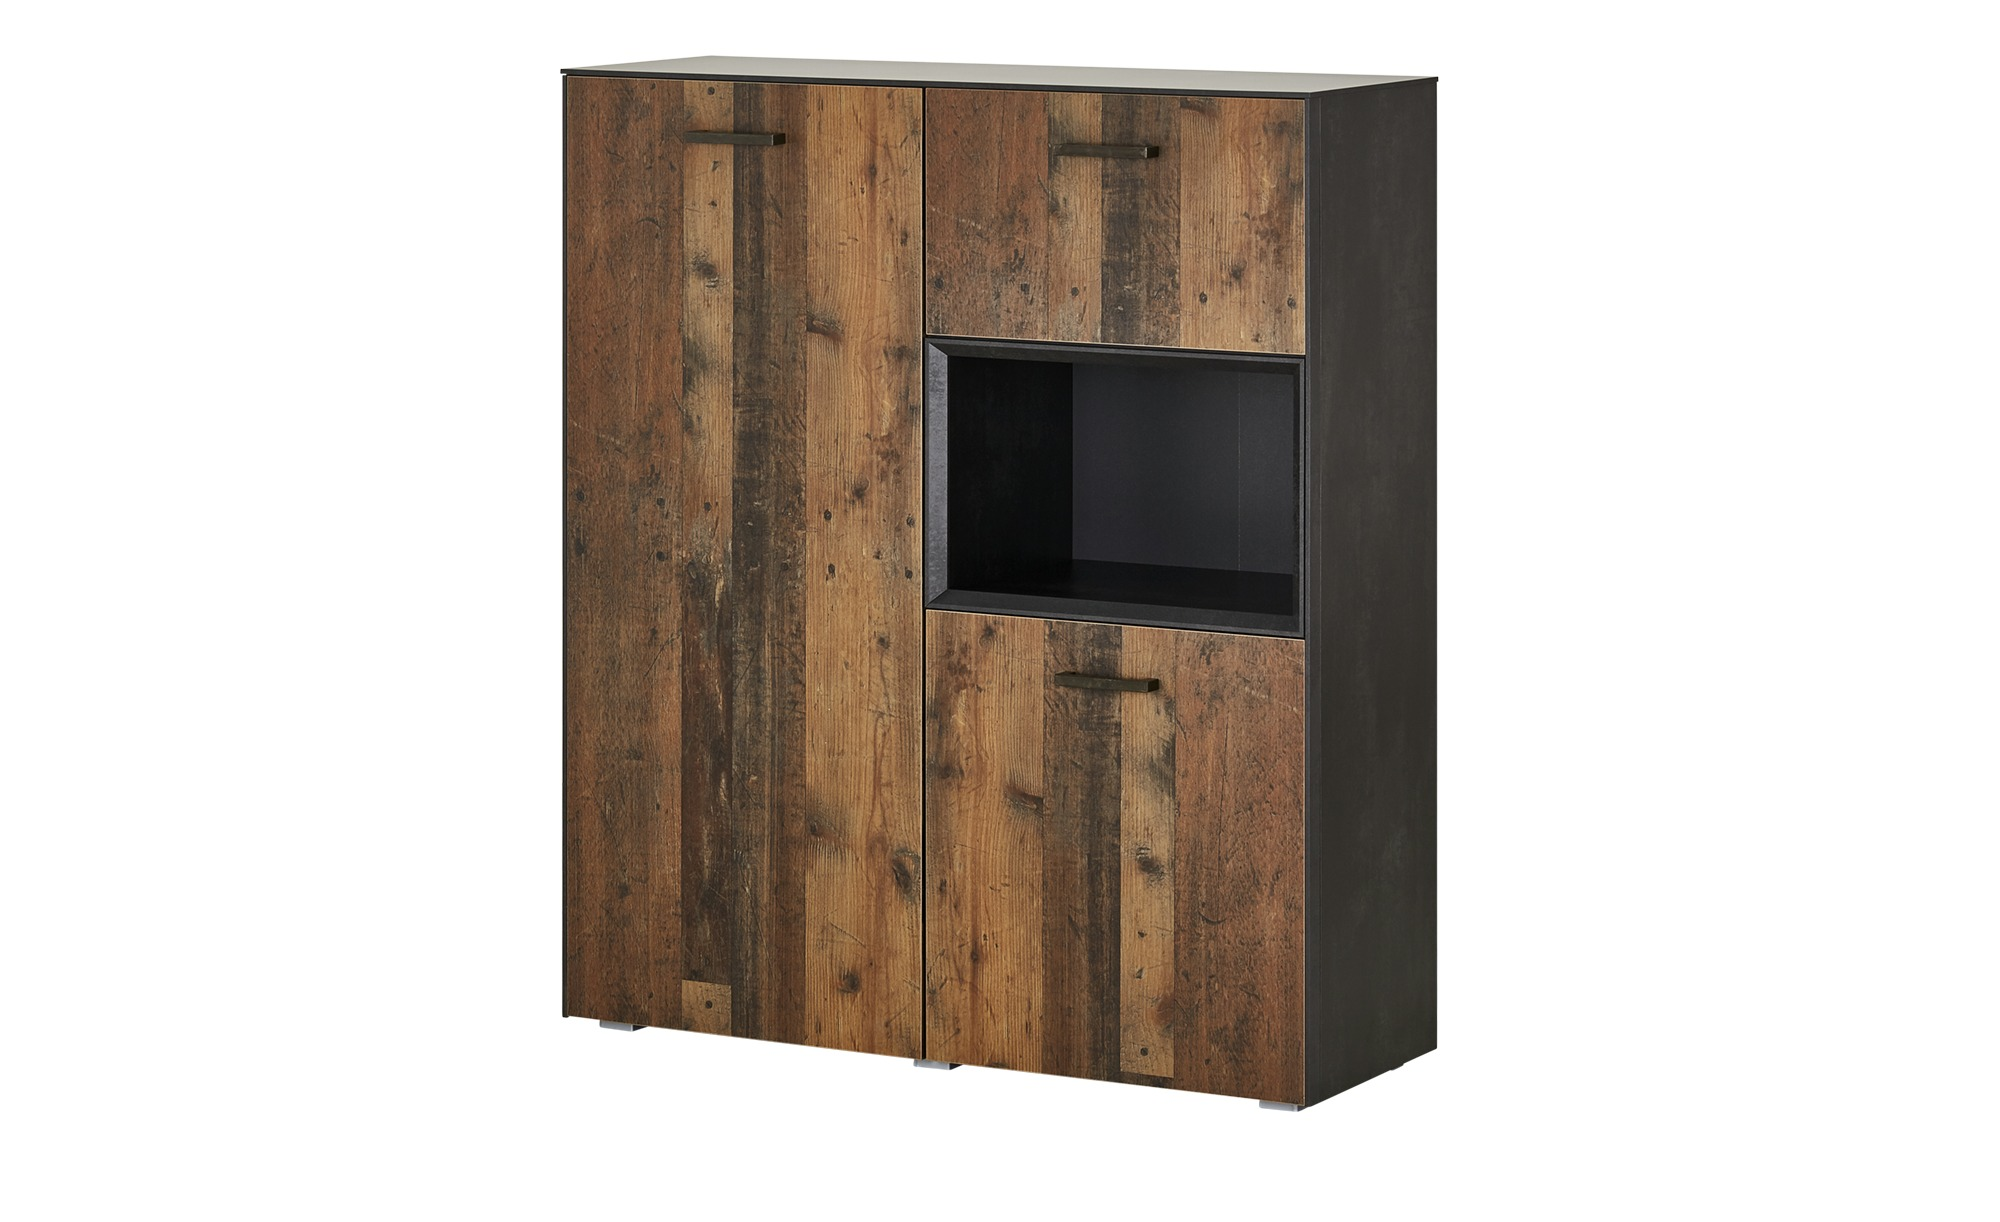 Highboard  Matera ¦ holzfarben ¦ Maße (cm): B: 118 H: 140 T: 41 Kommoden & Sideboards > Highboards - Höffner